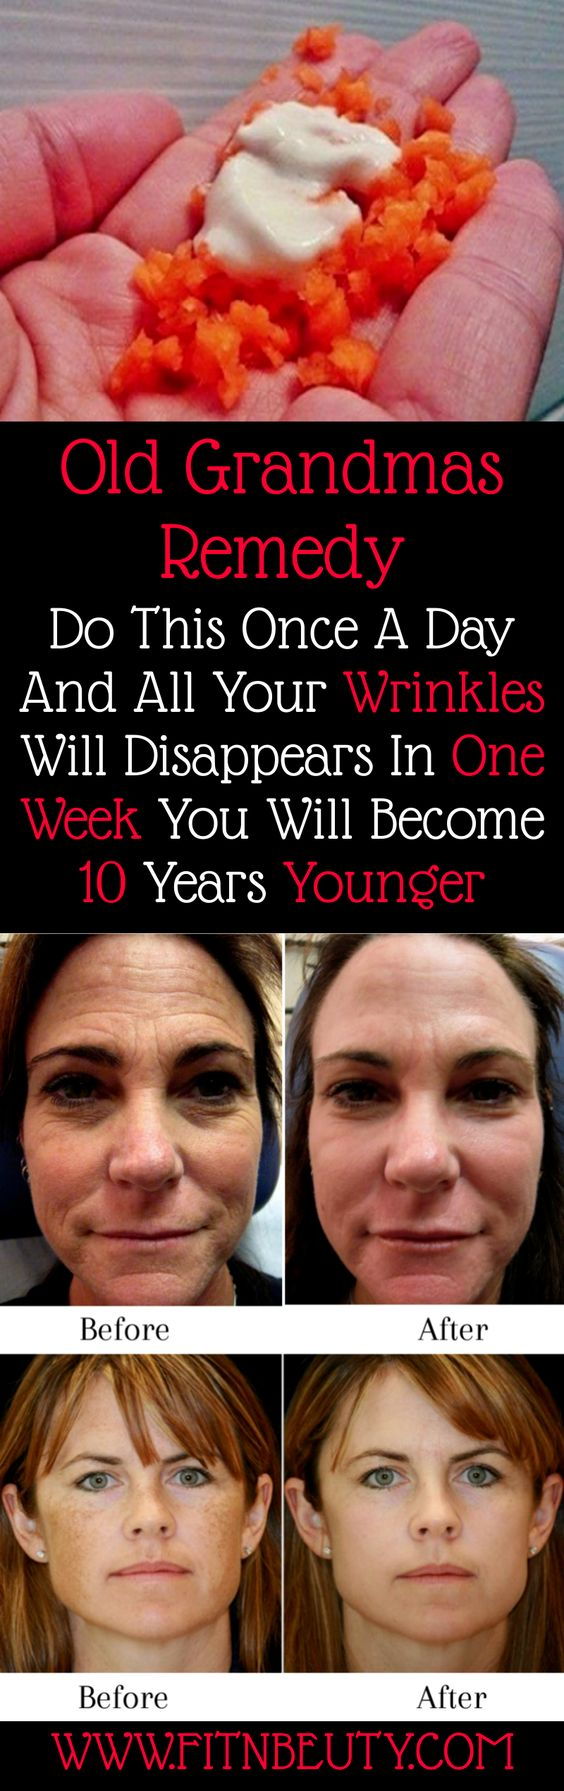 Old Grandmas Remedy Do This Once A Day And All Your Wrinkles Will Disappears In One Week You Will Become 10 Years Younger